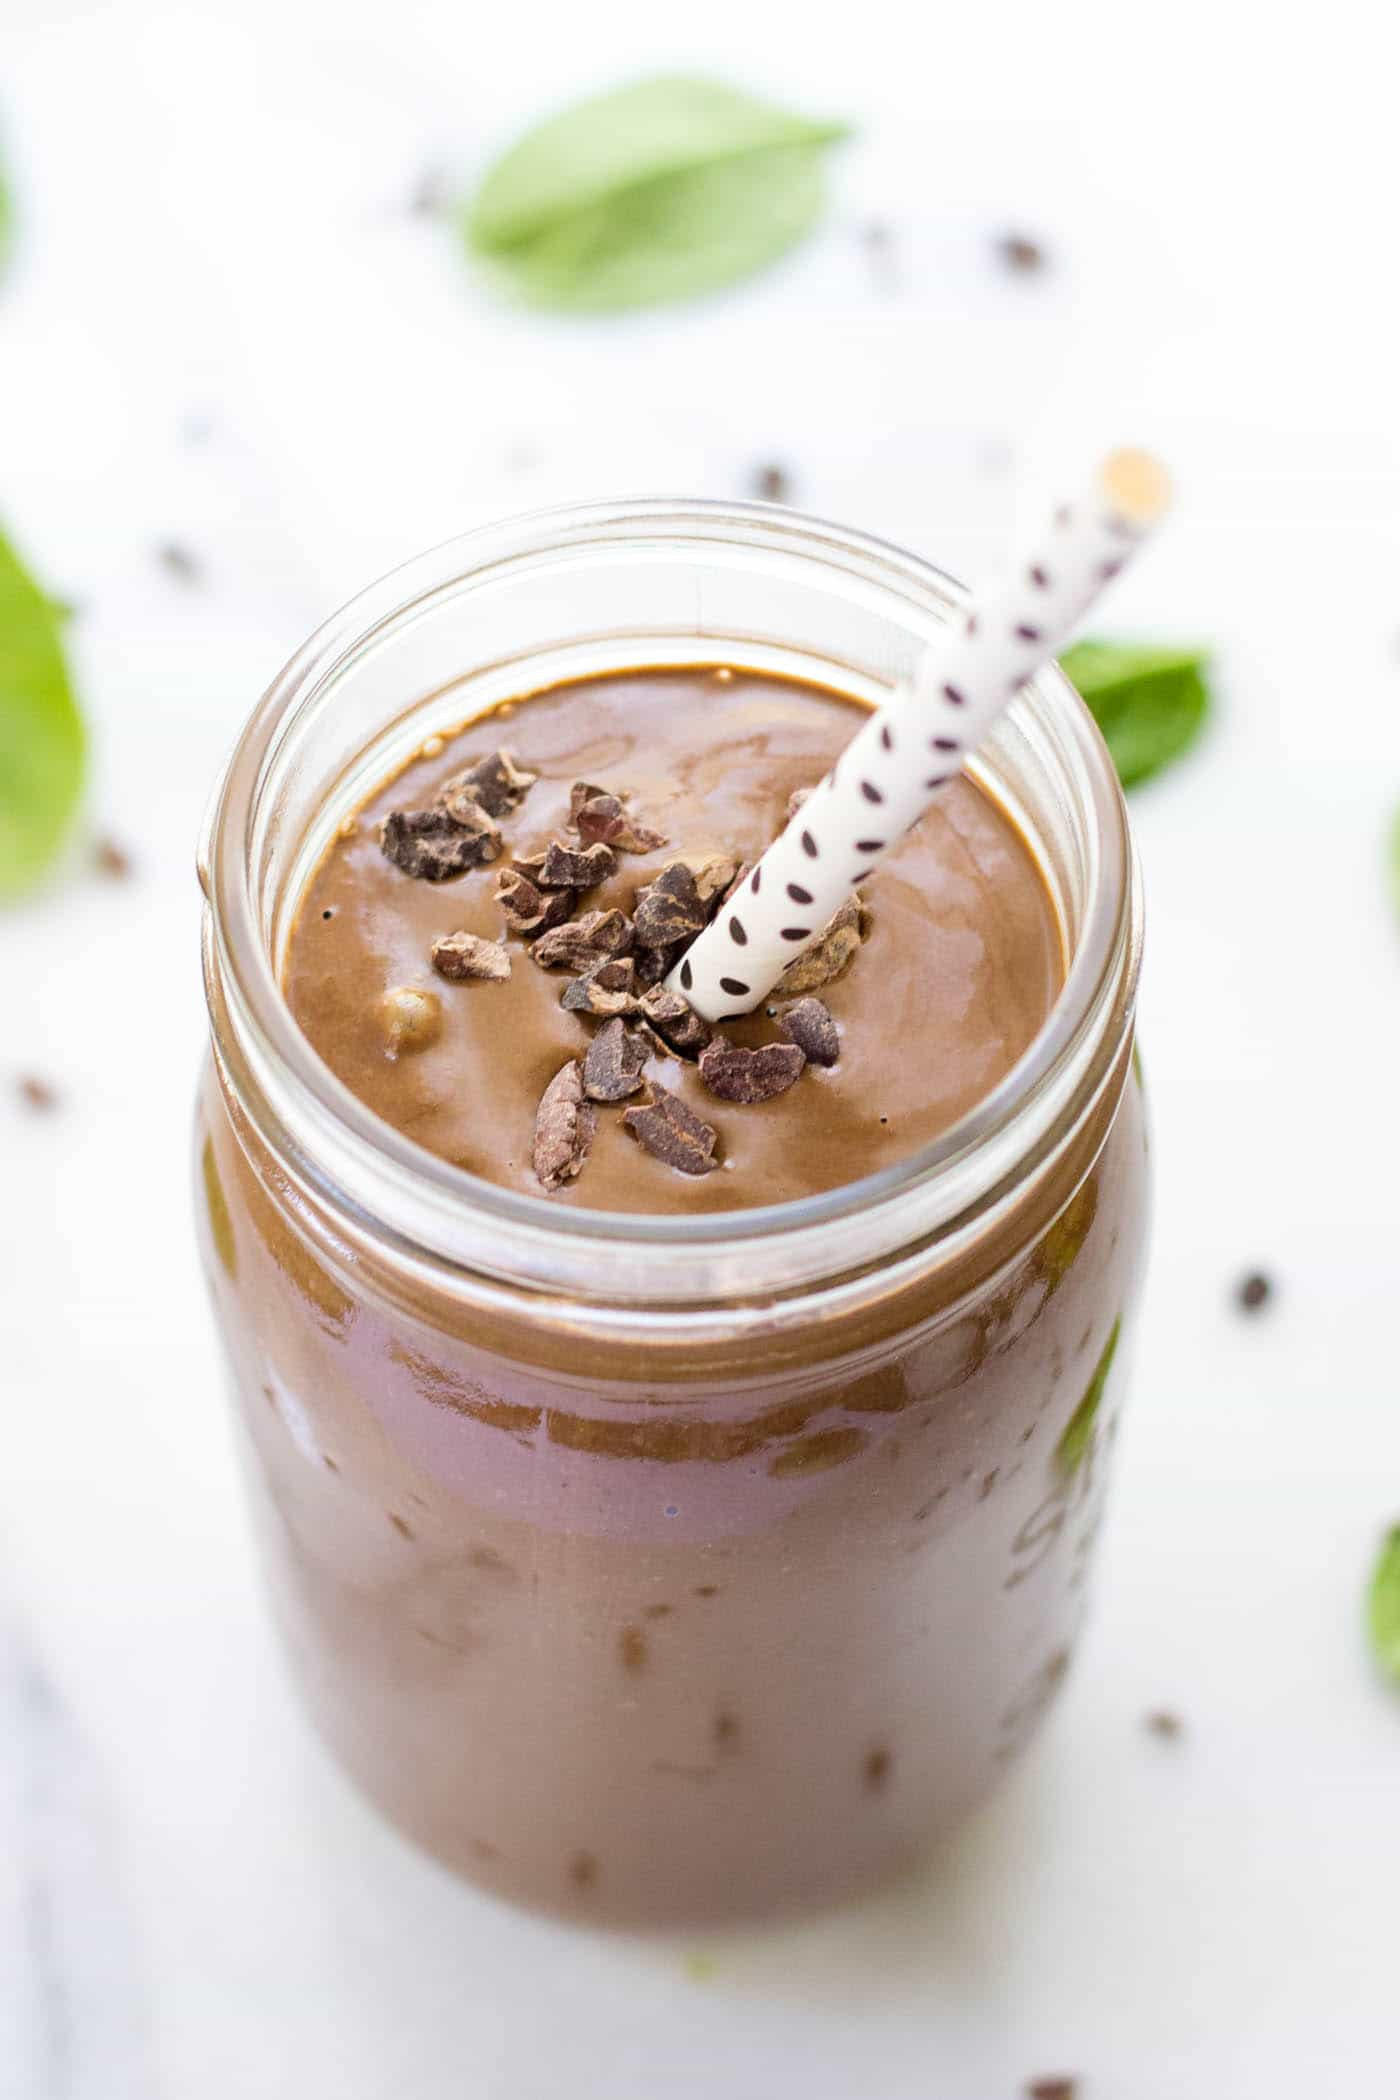 This is the BEST Chocolate Peanut Butter Smoothie ever - and perfect for post-workout!